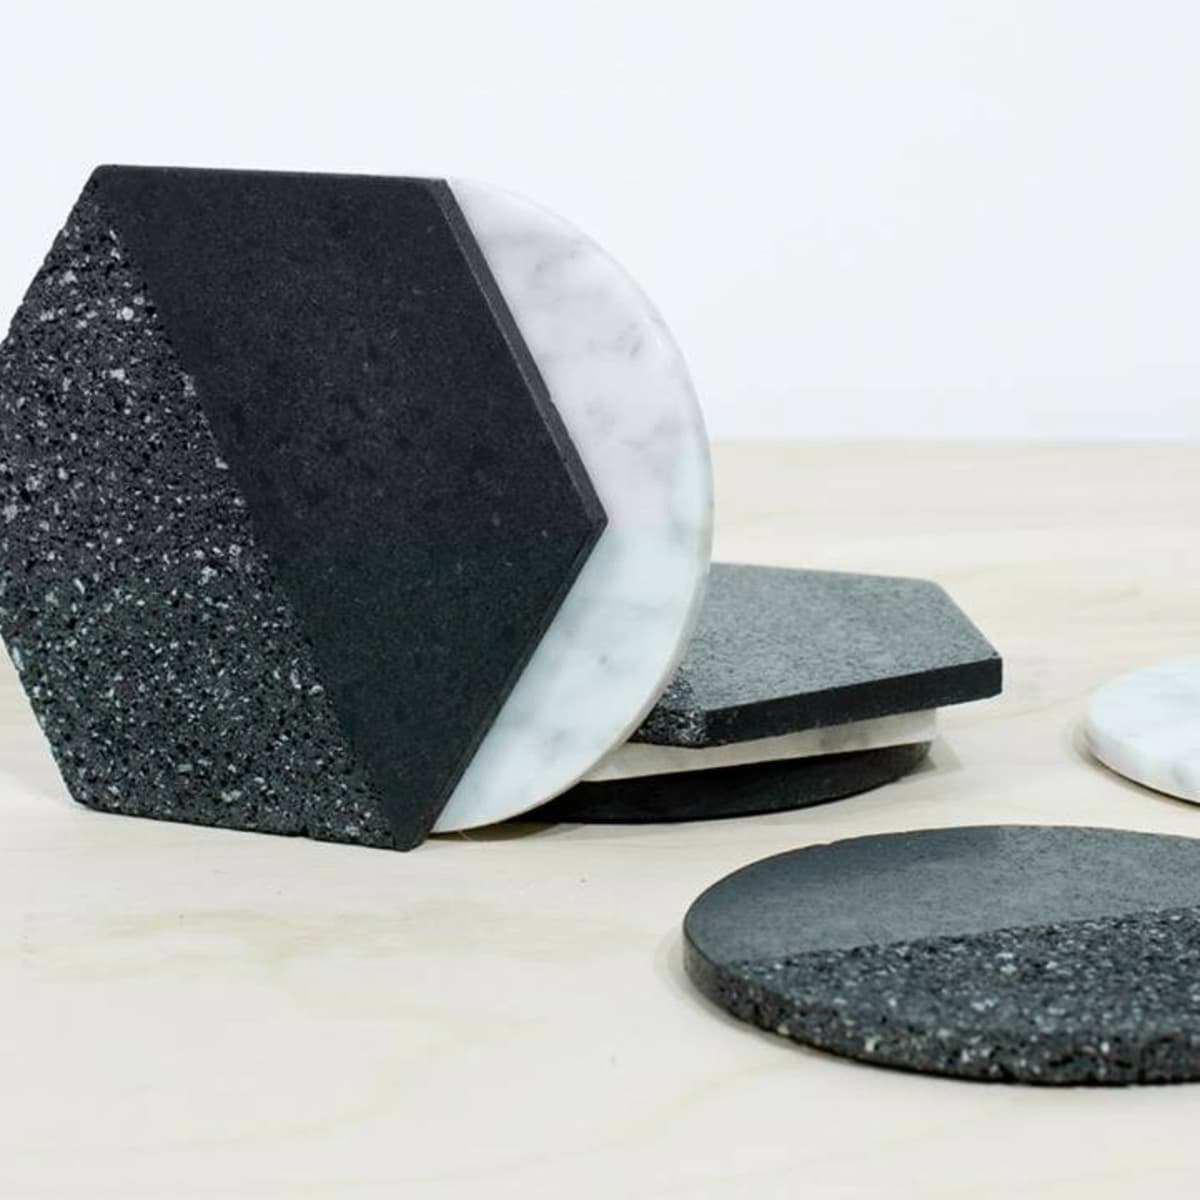 Volcanic rock and marble coasters from The Citizenry